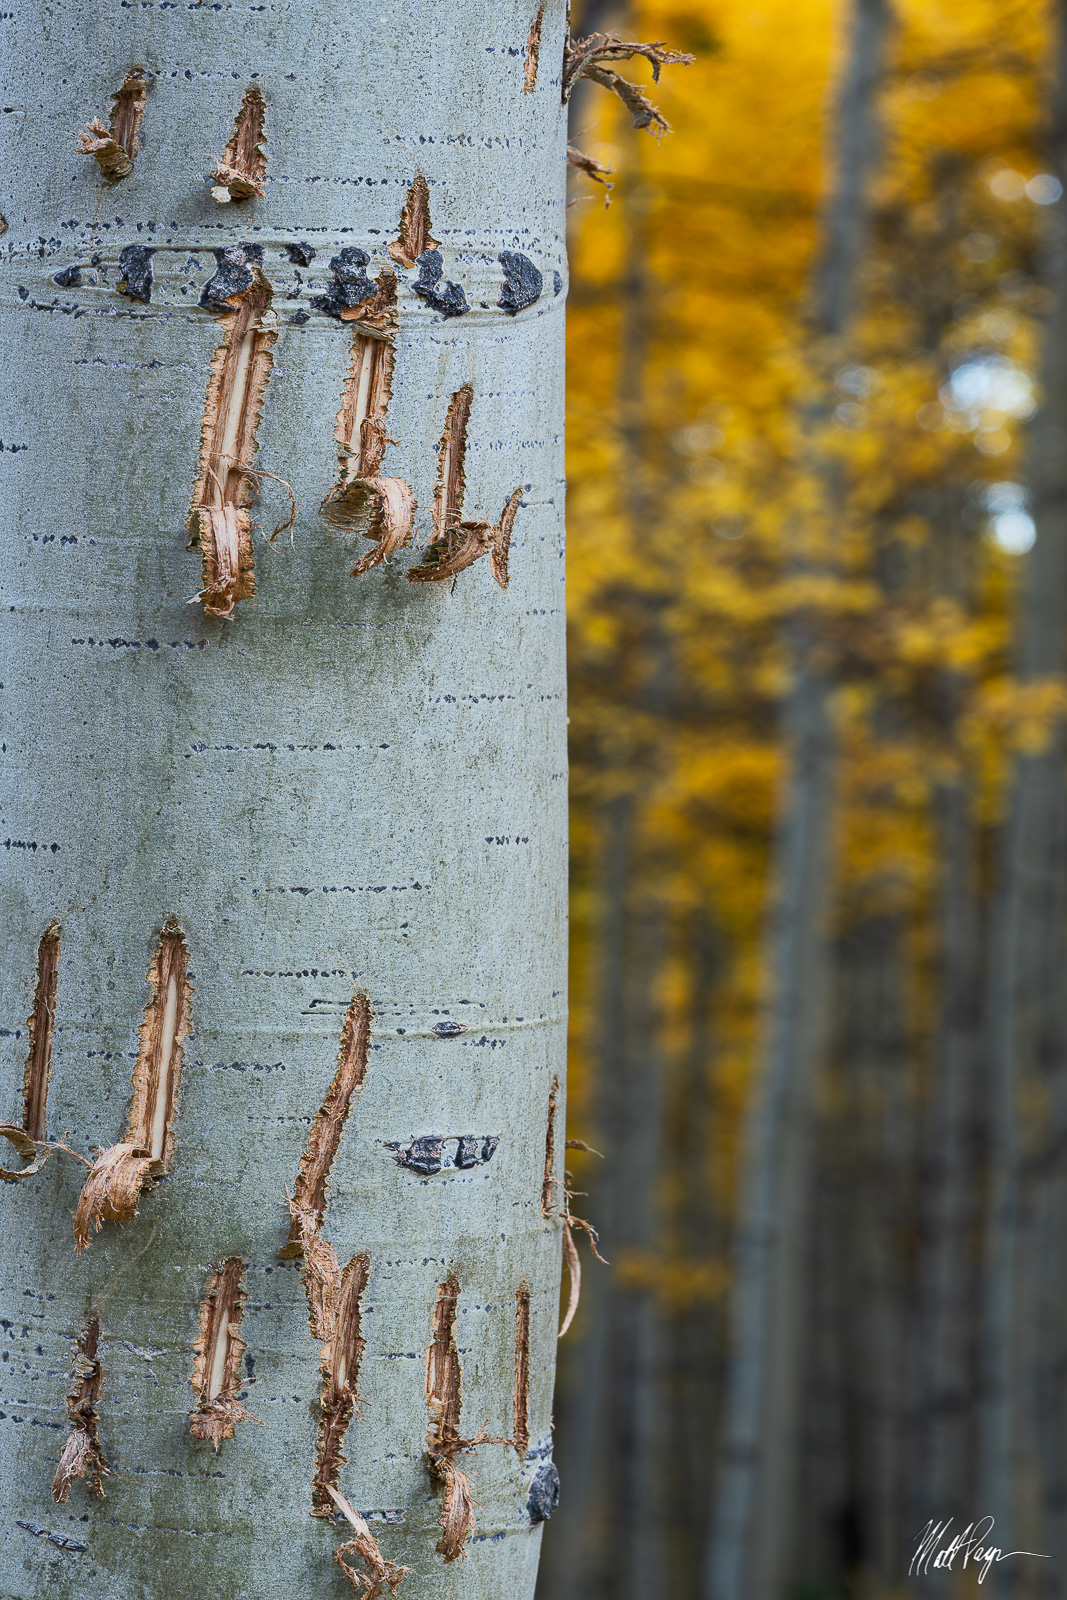 On a hike through the forest in autumn near Crested Butte, Colorado, I stumbled upon this aspen tree that had very fresh bear...